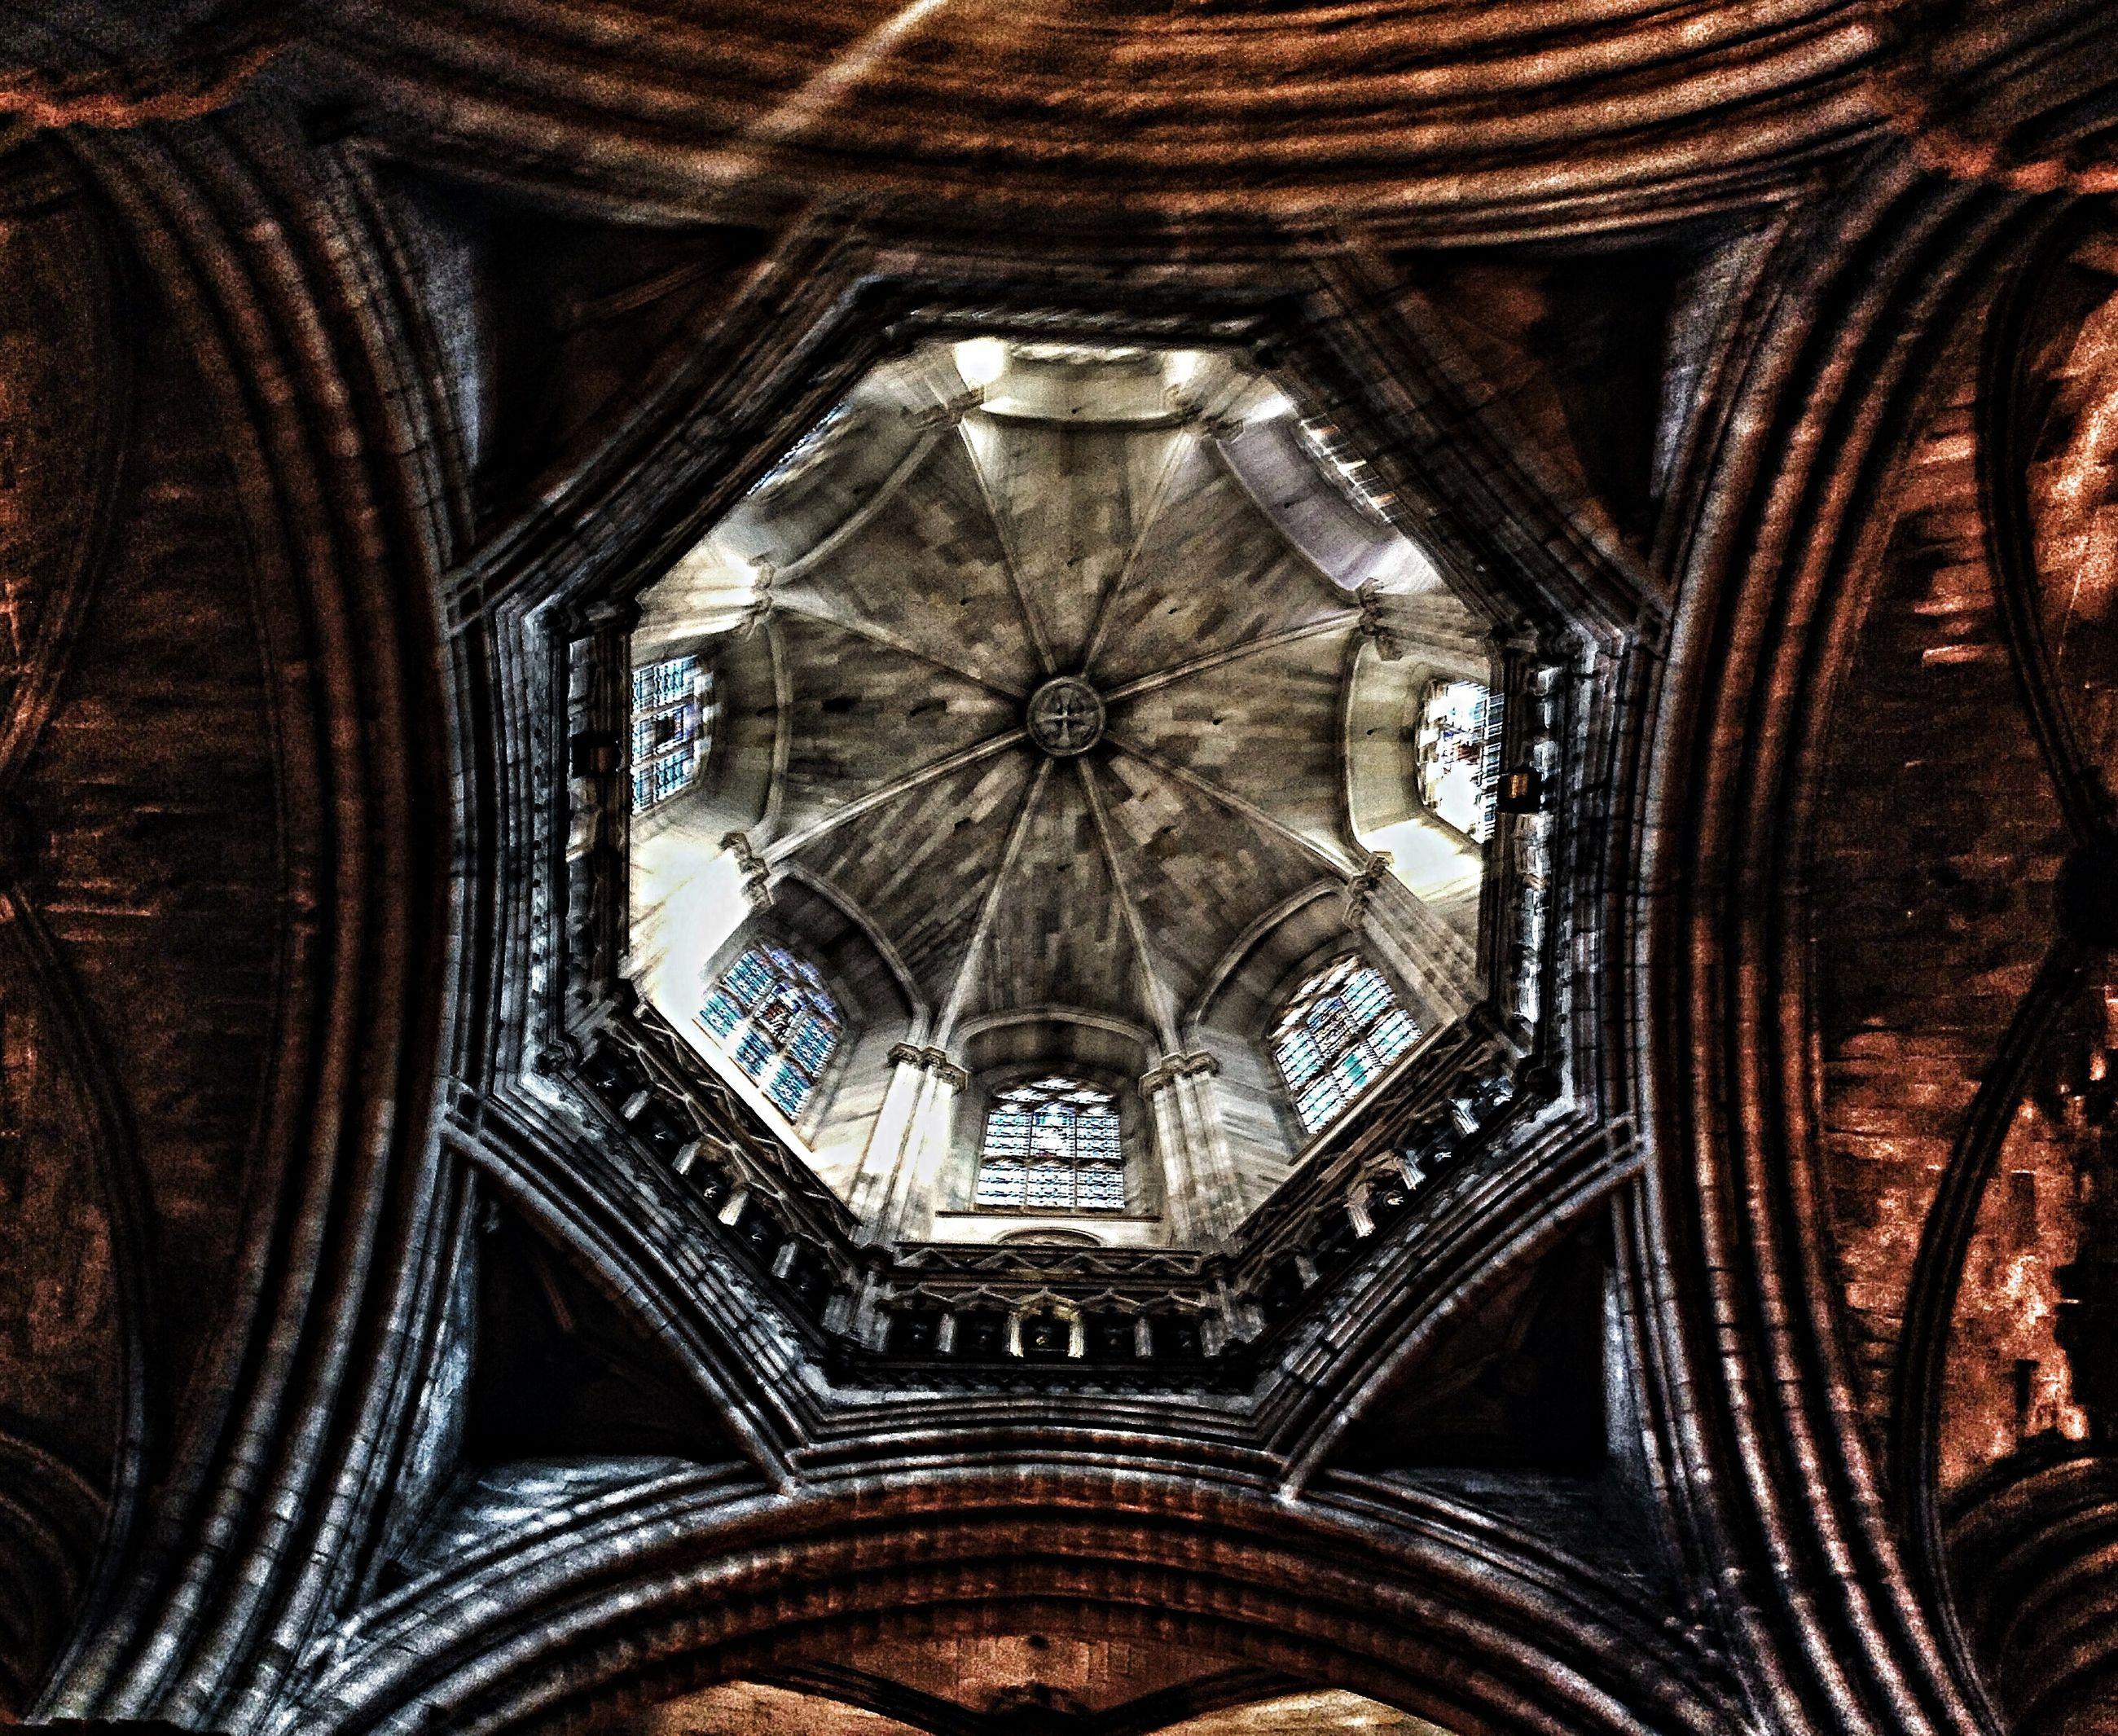 religion, place of worship, indoors, spirituality, church, architecture, arch, cathedral, built structure, ornate, low angle view, ceiling, design, architectural feature, history, famous place, pattern, interior